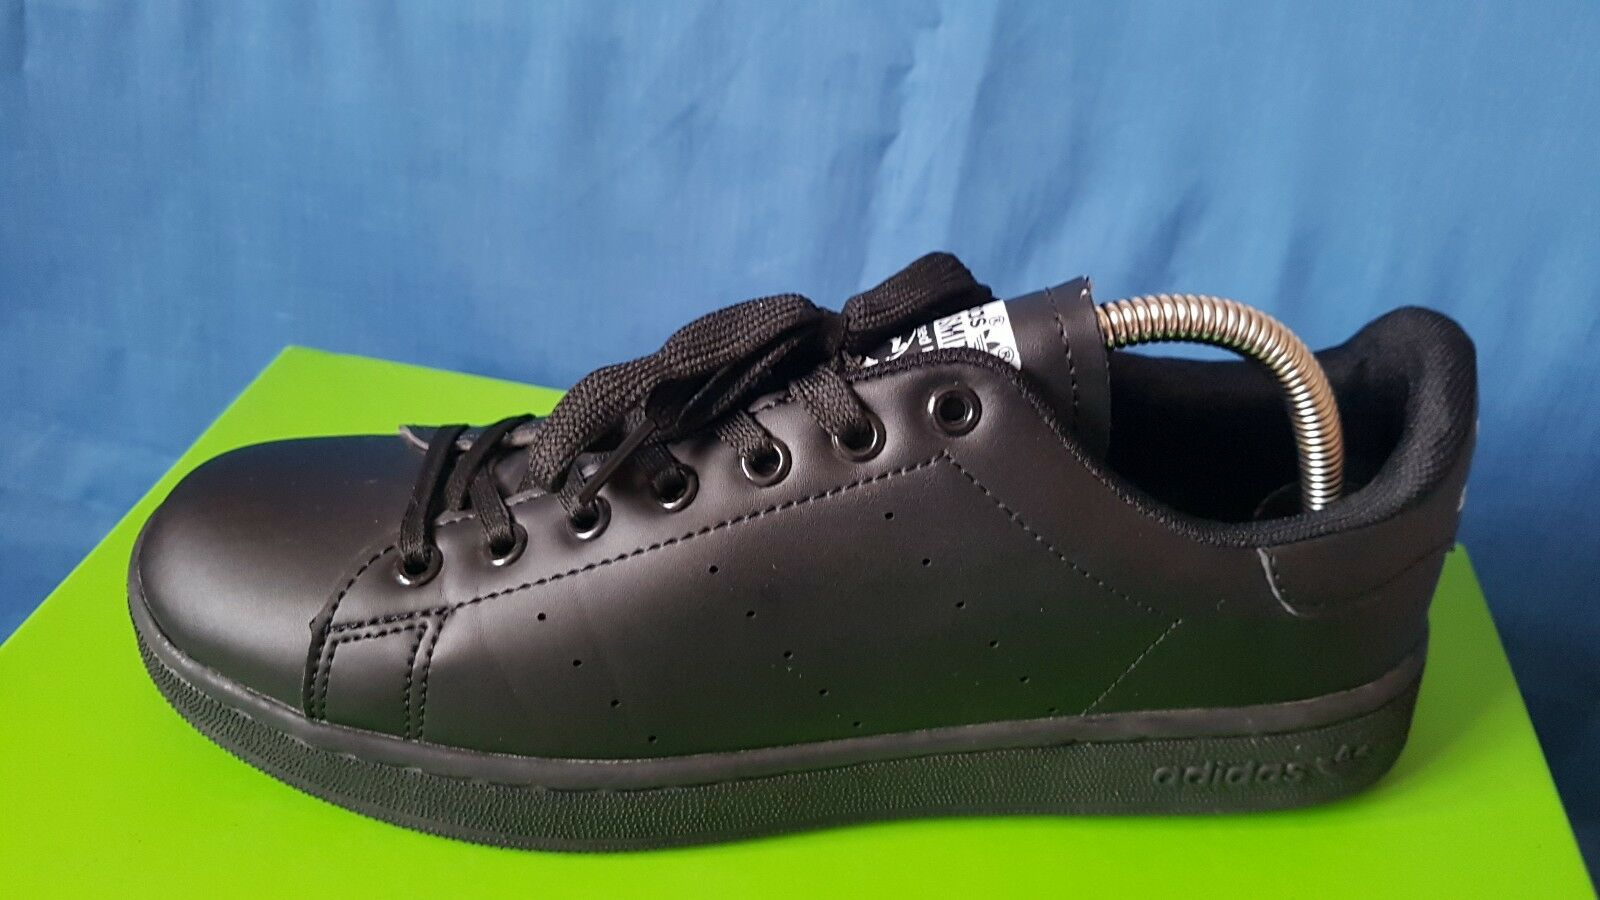 Mr/Ms durable Adidas Trainers Mens Stan Smith Size7.5 durable Mr/Ms Fast delivery Authentic guarantee 491c8f